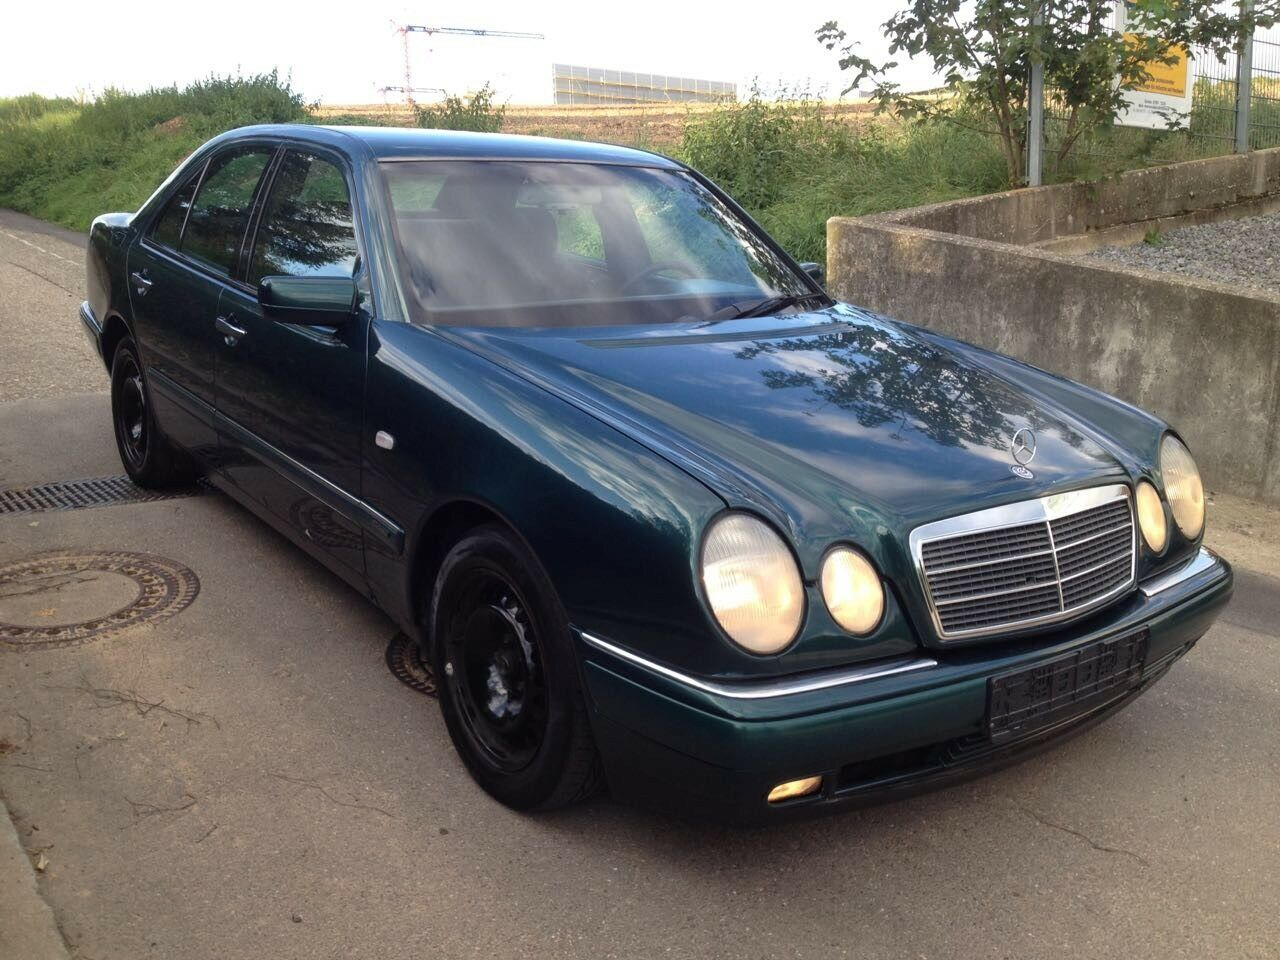 Mercedes Benz W210 280 E, Winterauto,